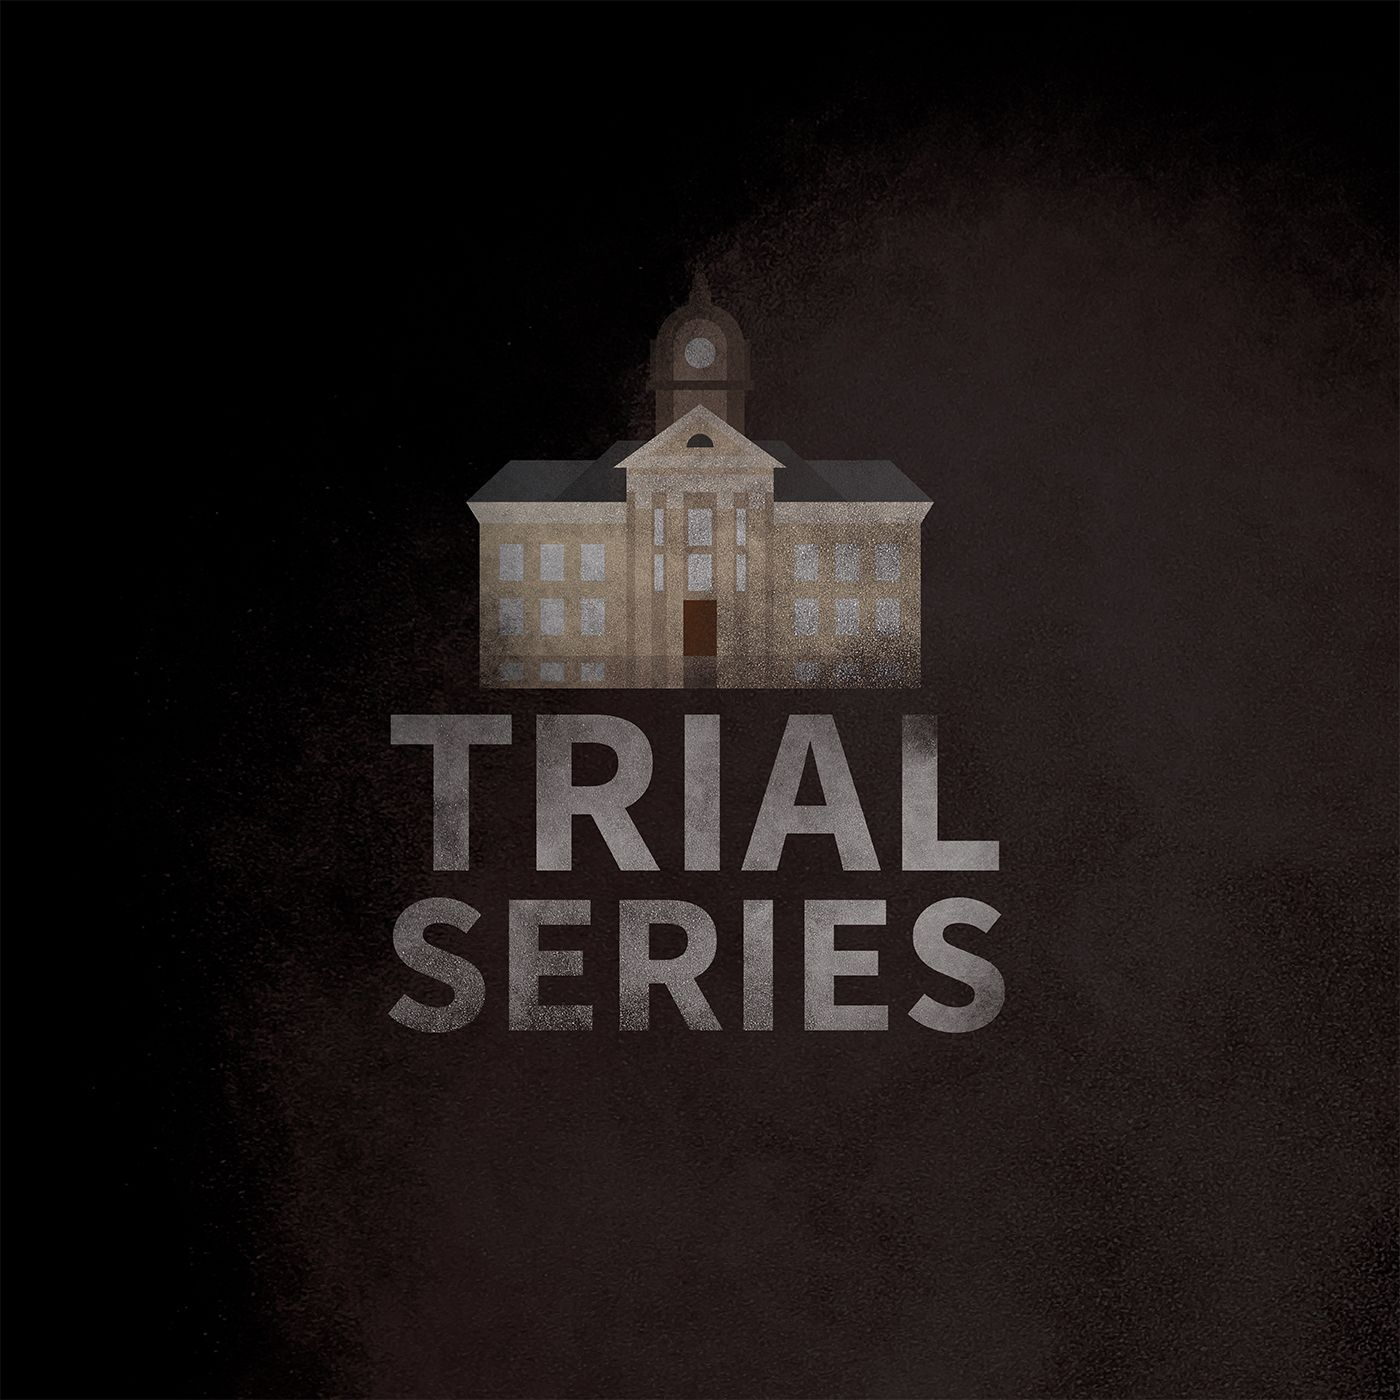 The Trial Series: What's next?